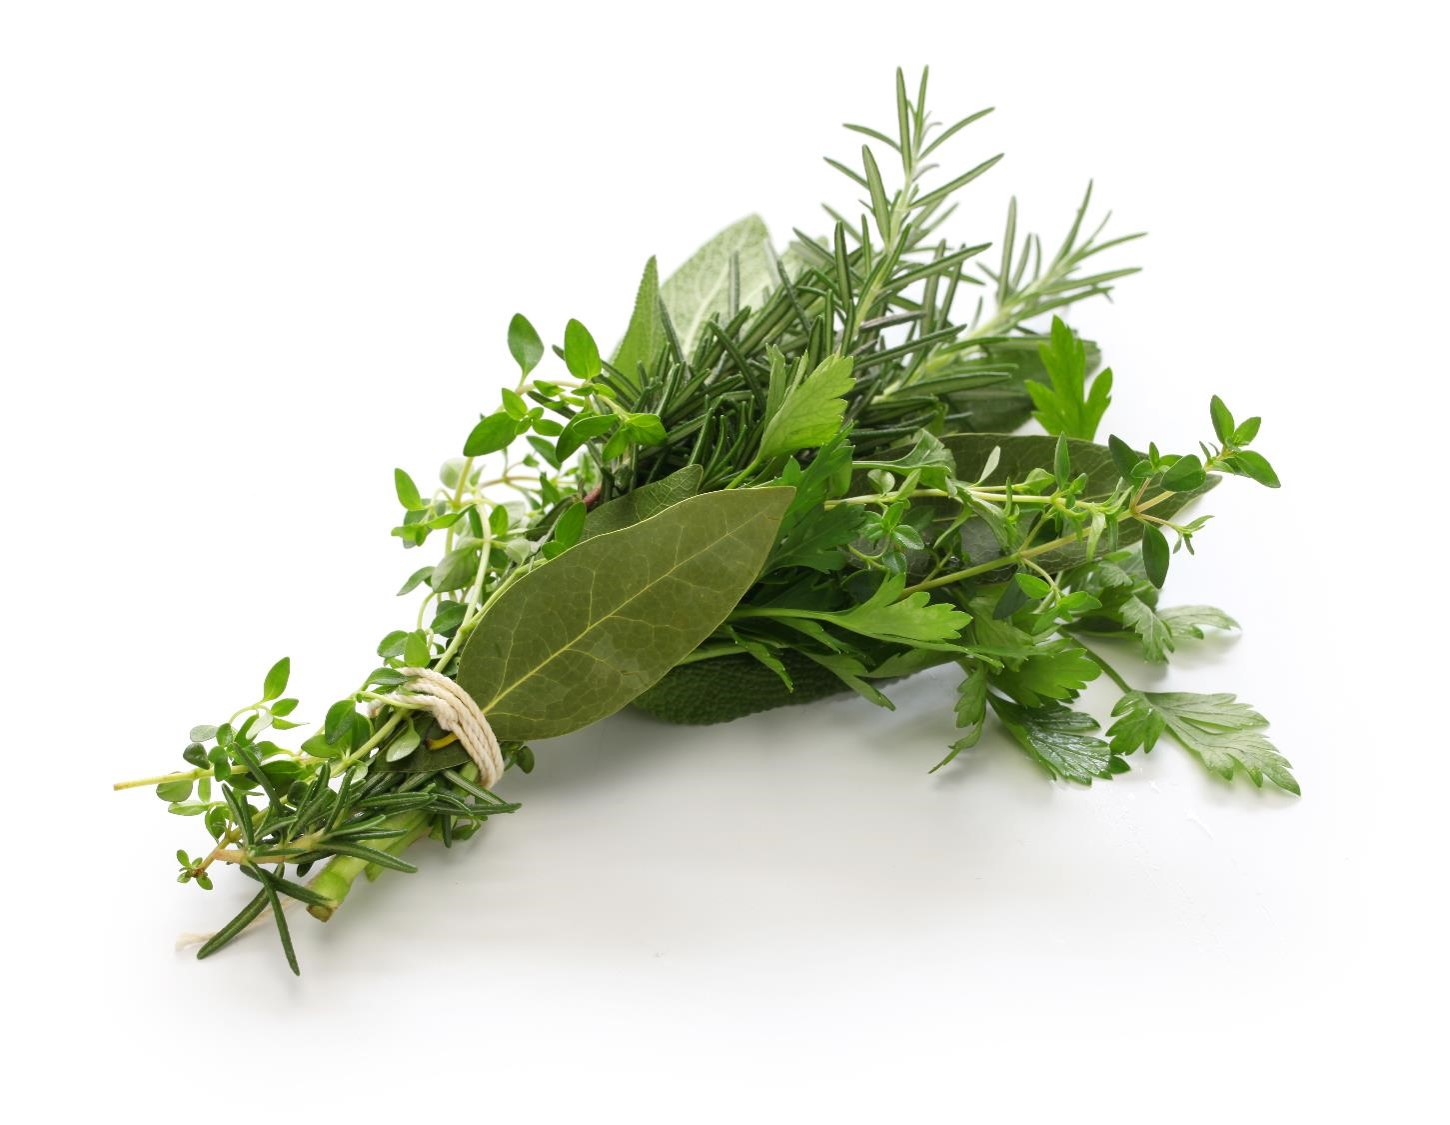 FIND OUT MORE ABOUT MIXED HERBS